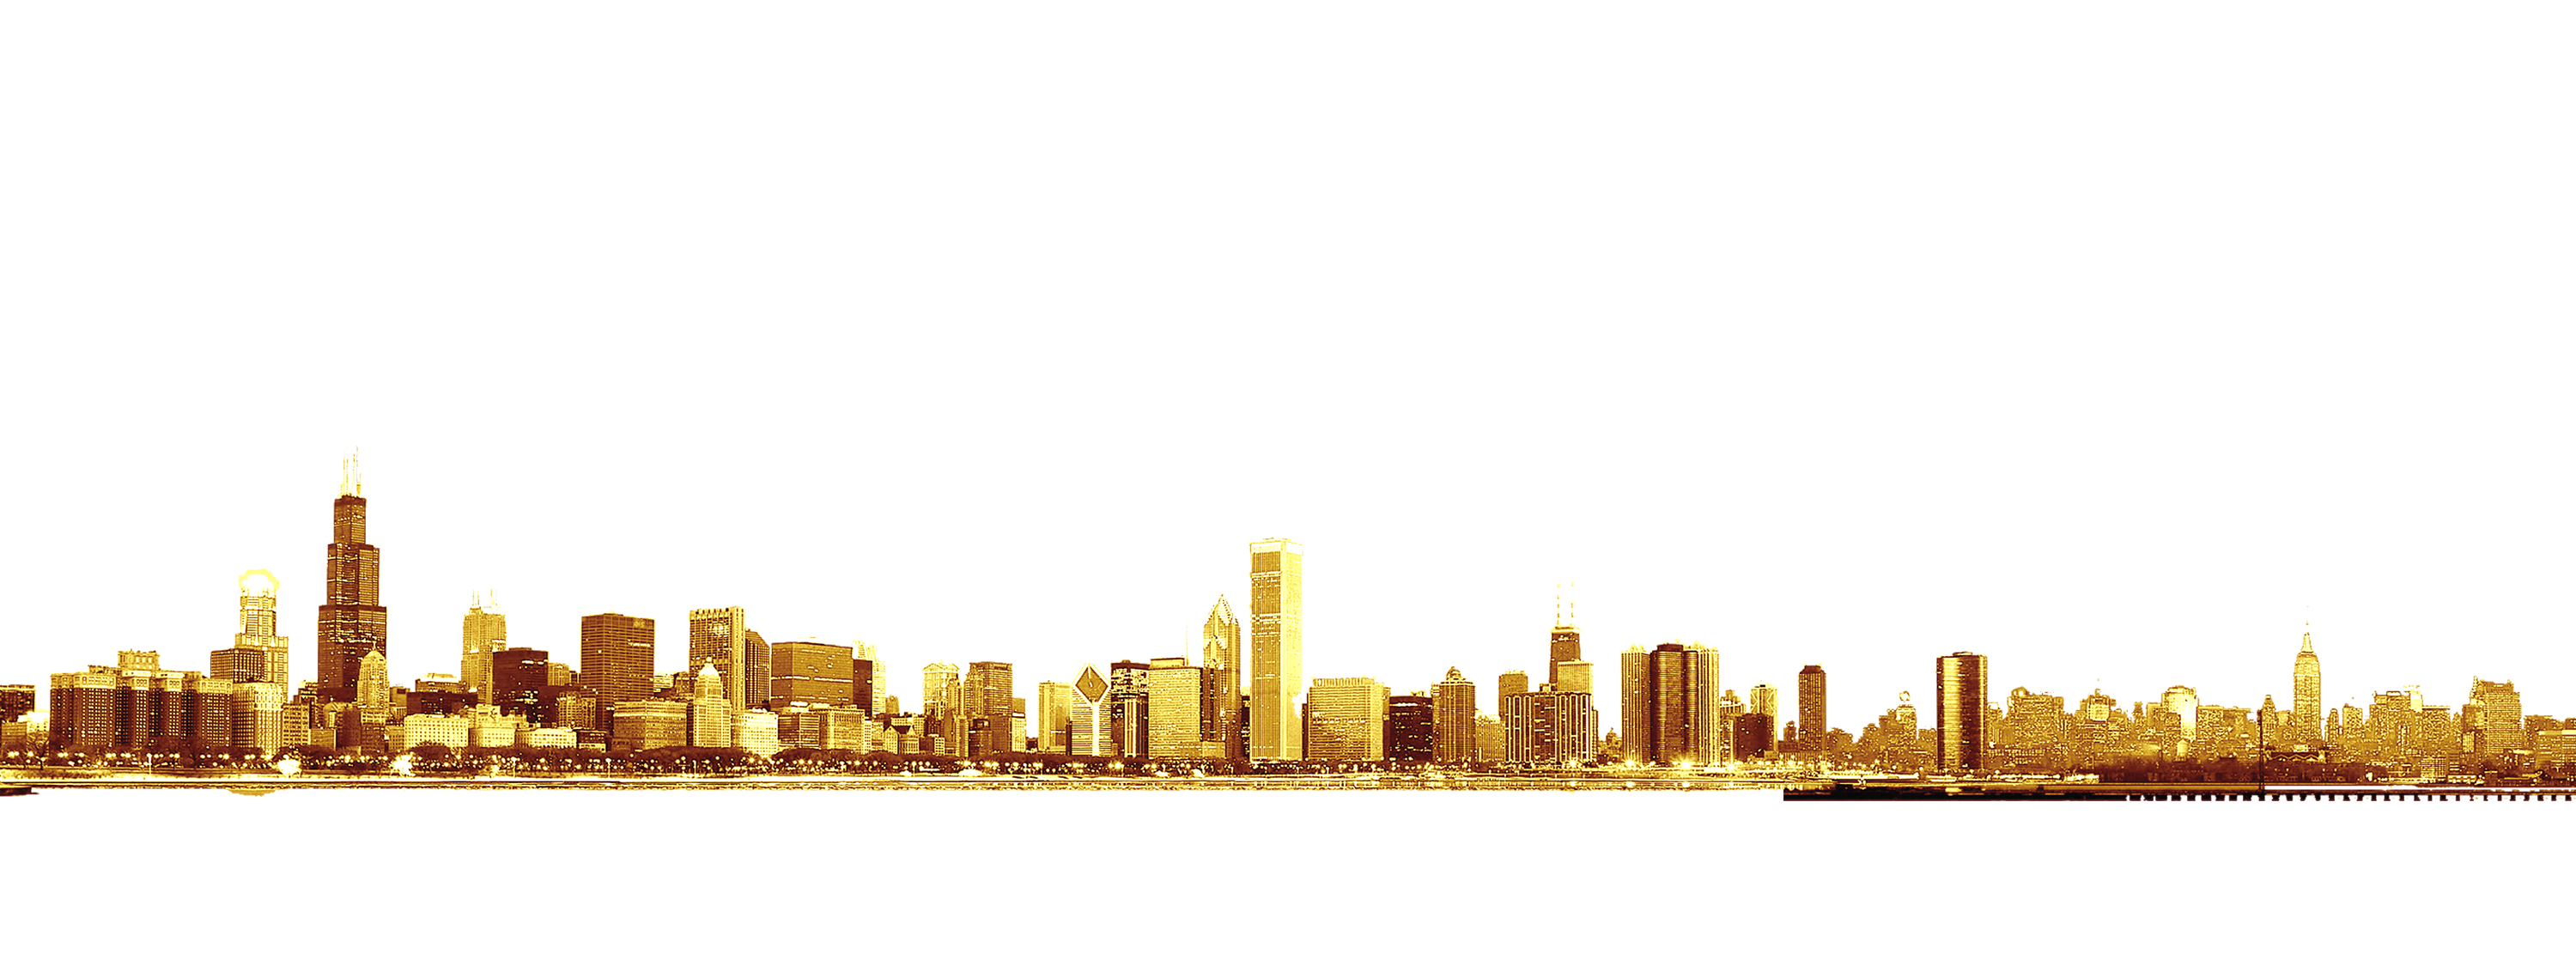 Png gold city clipart image royalty free Chicago Skyline Brand Font - Golden city png download - 3000 ... image royalty free